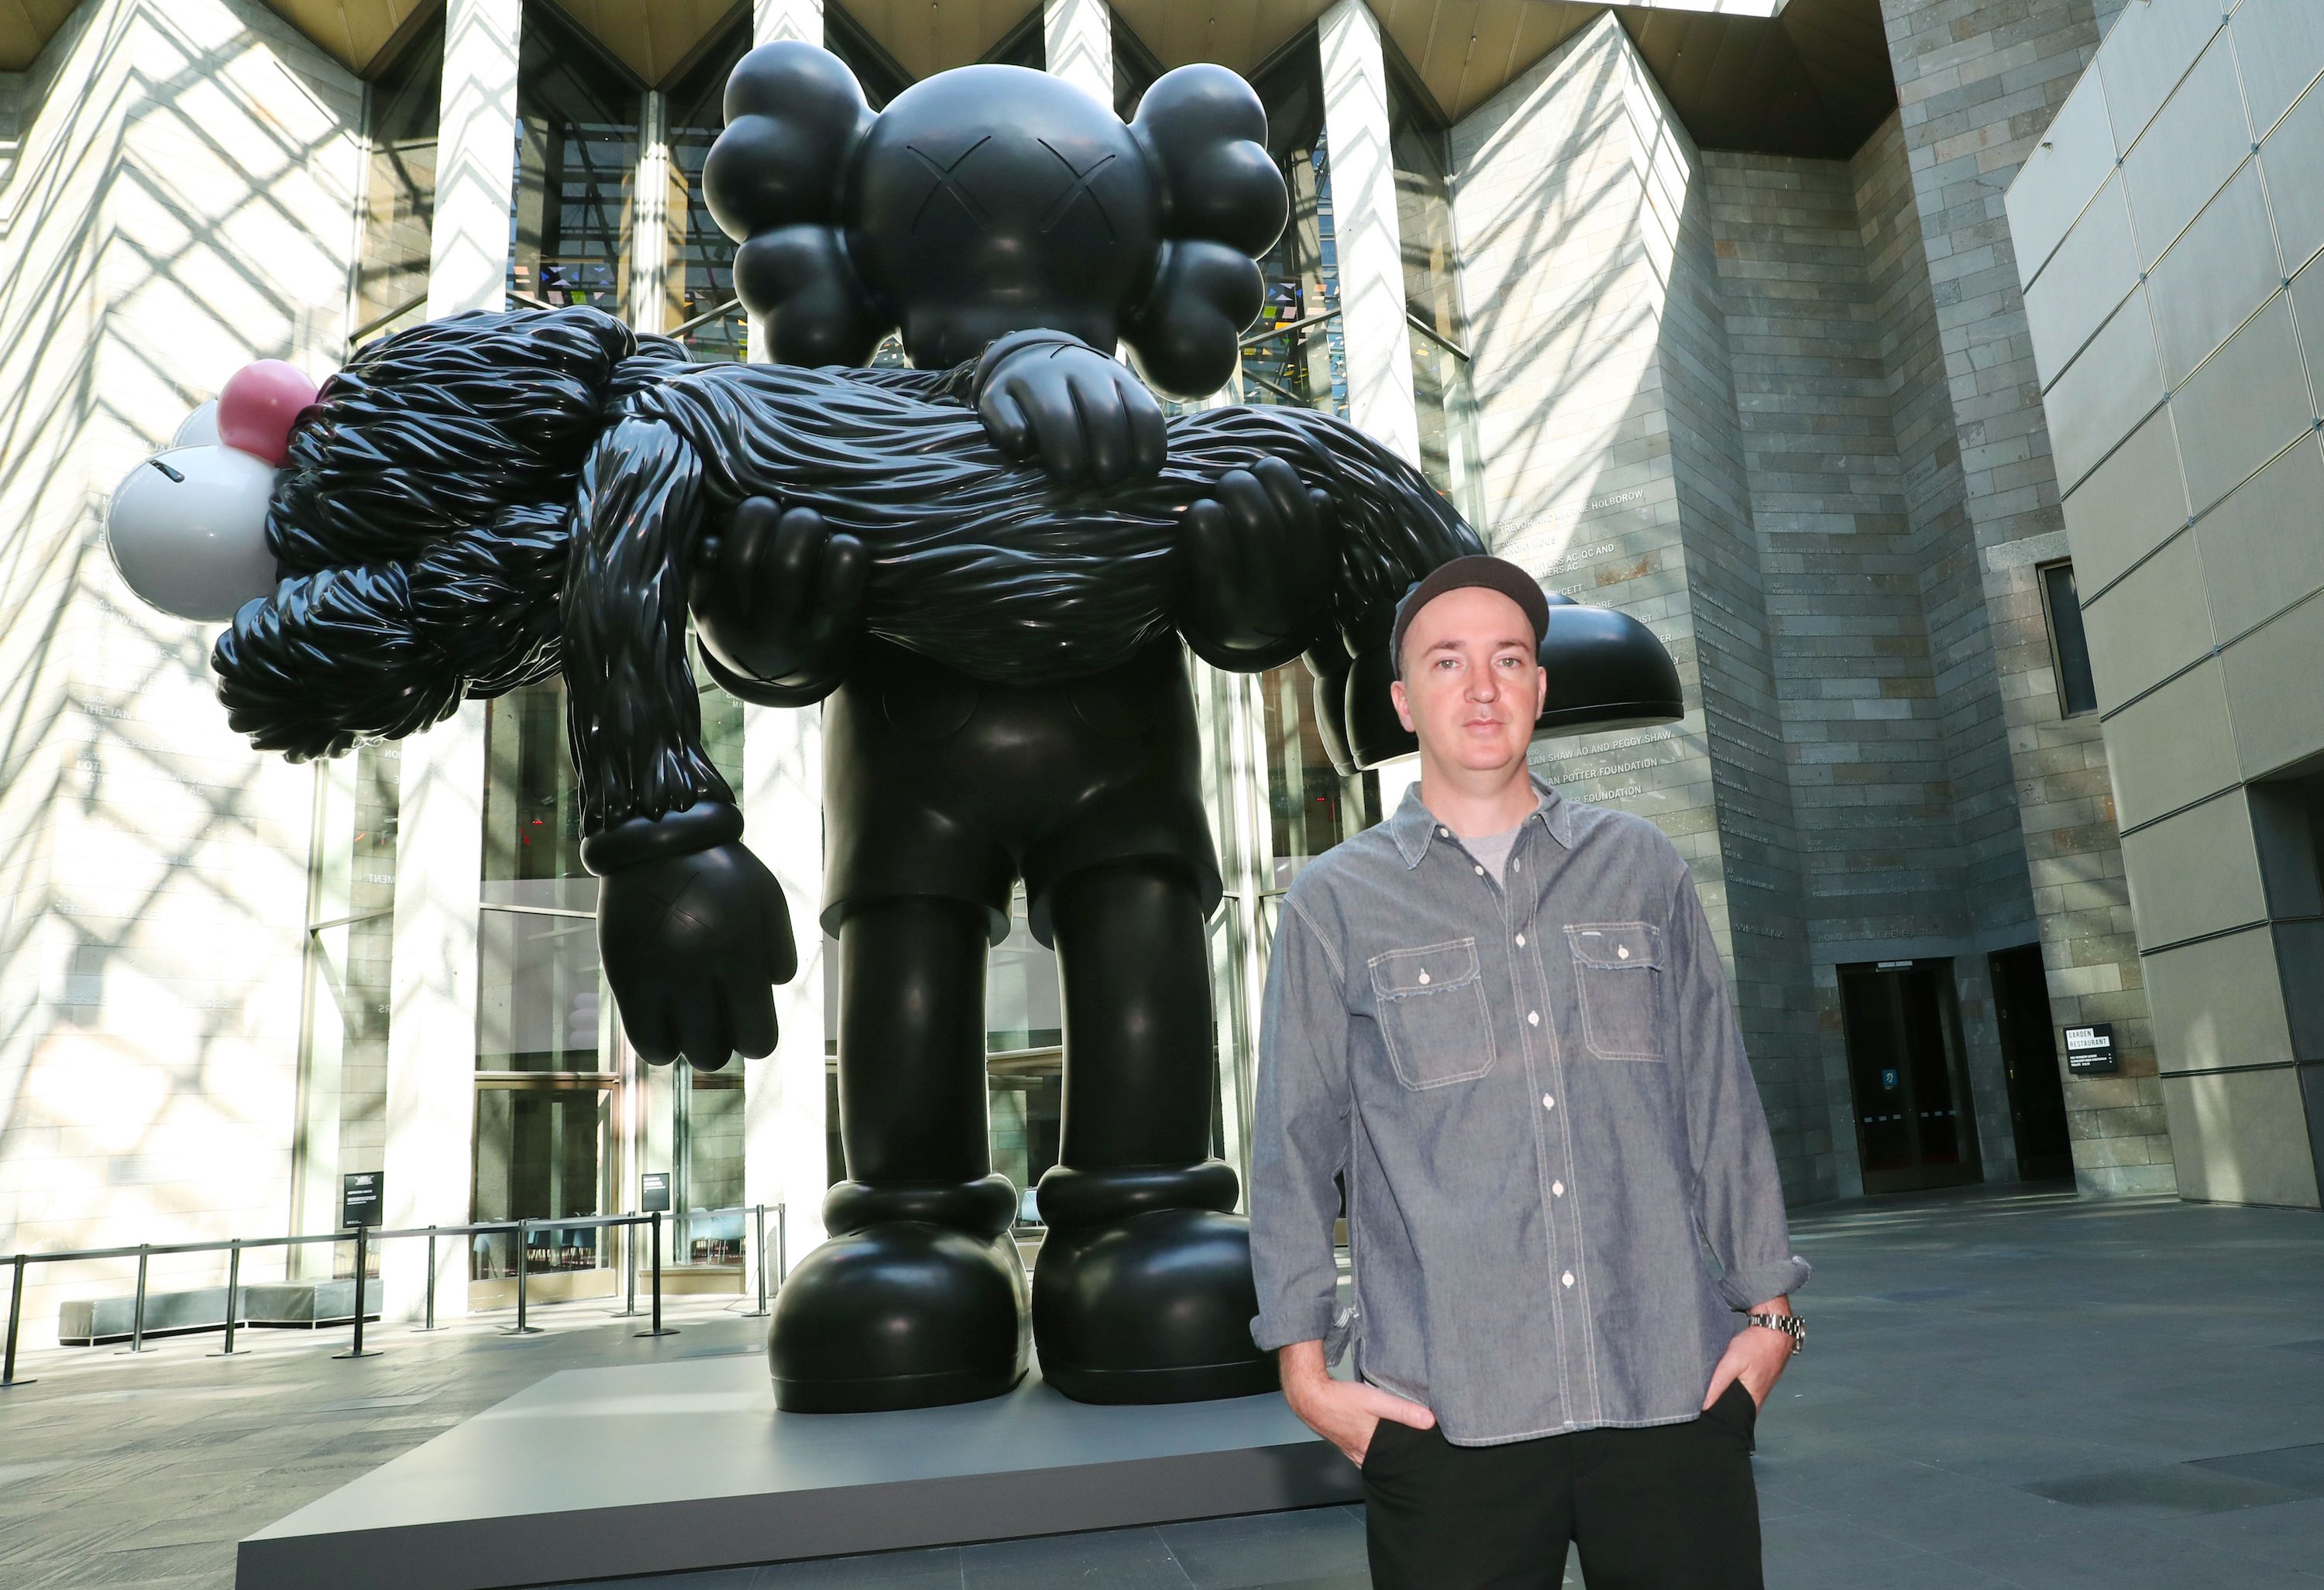 KAWS Pays $17 M. for Brooklyn Building, Contested Banksy Sculpture Withdrawn from Auction, and More: Morning Links from November 19, 2019 -